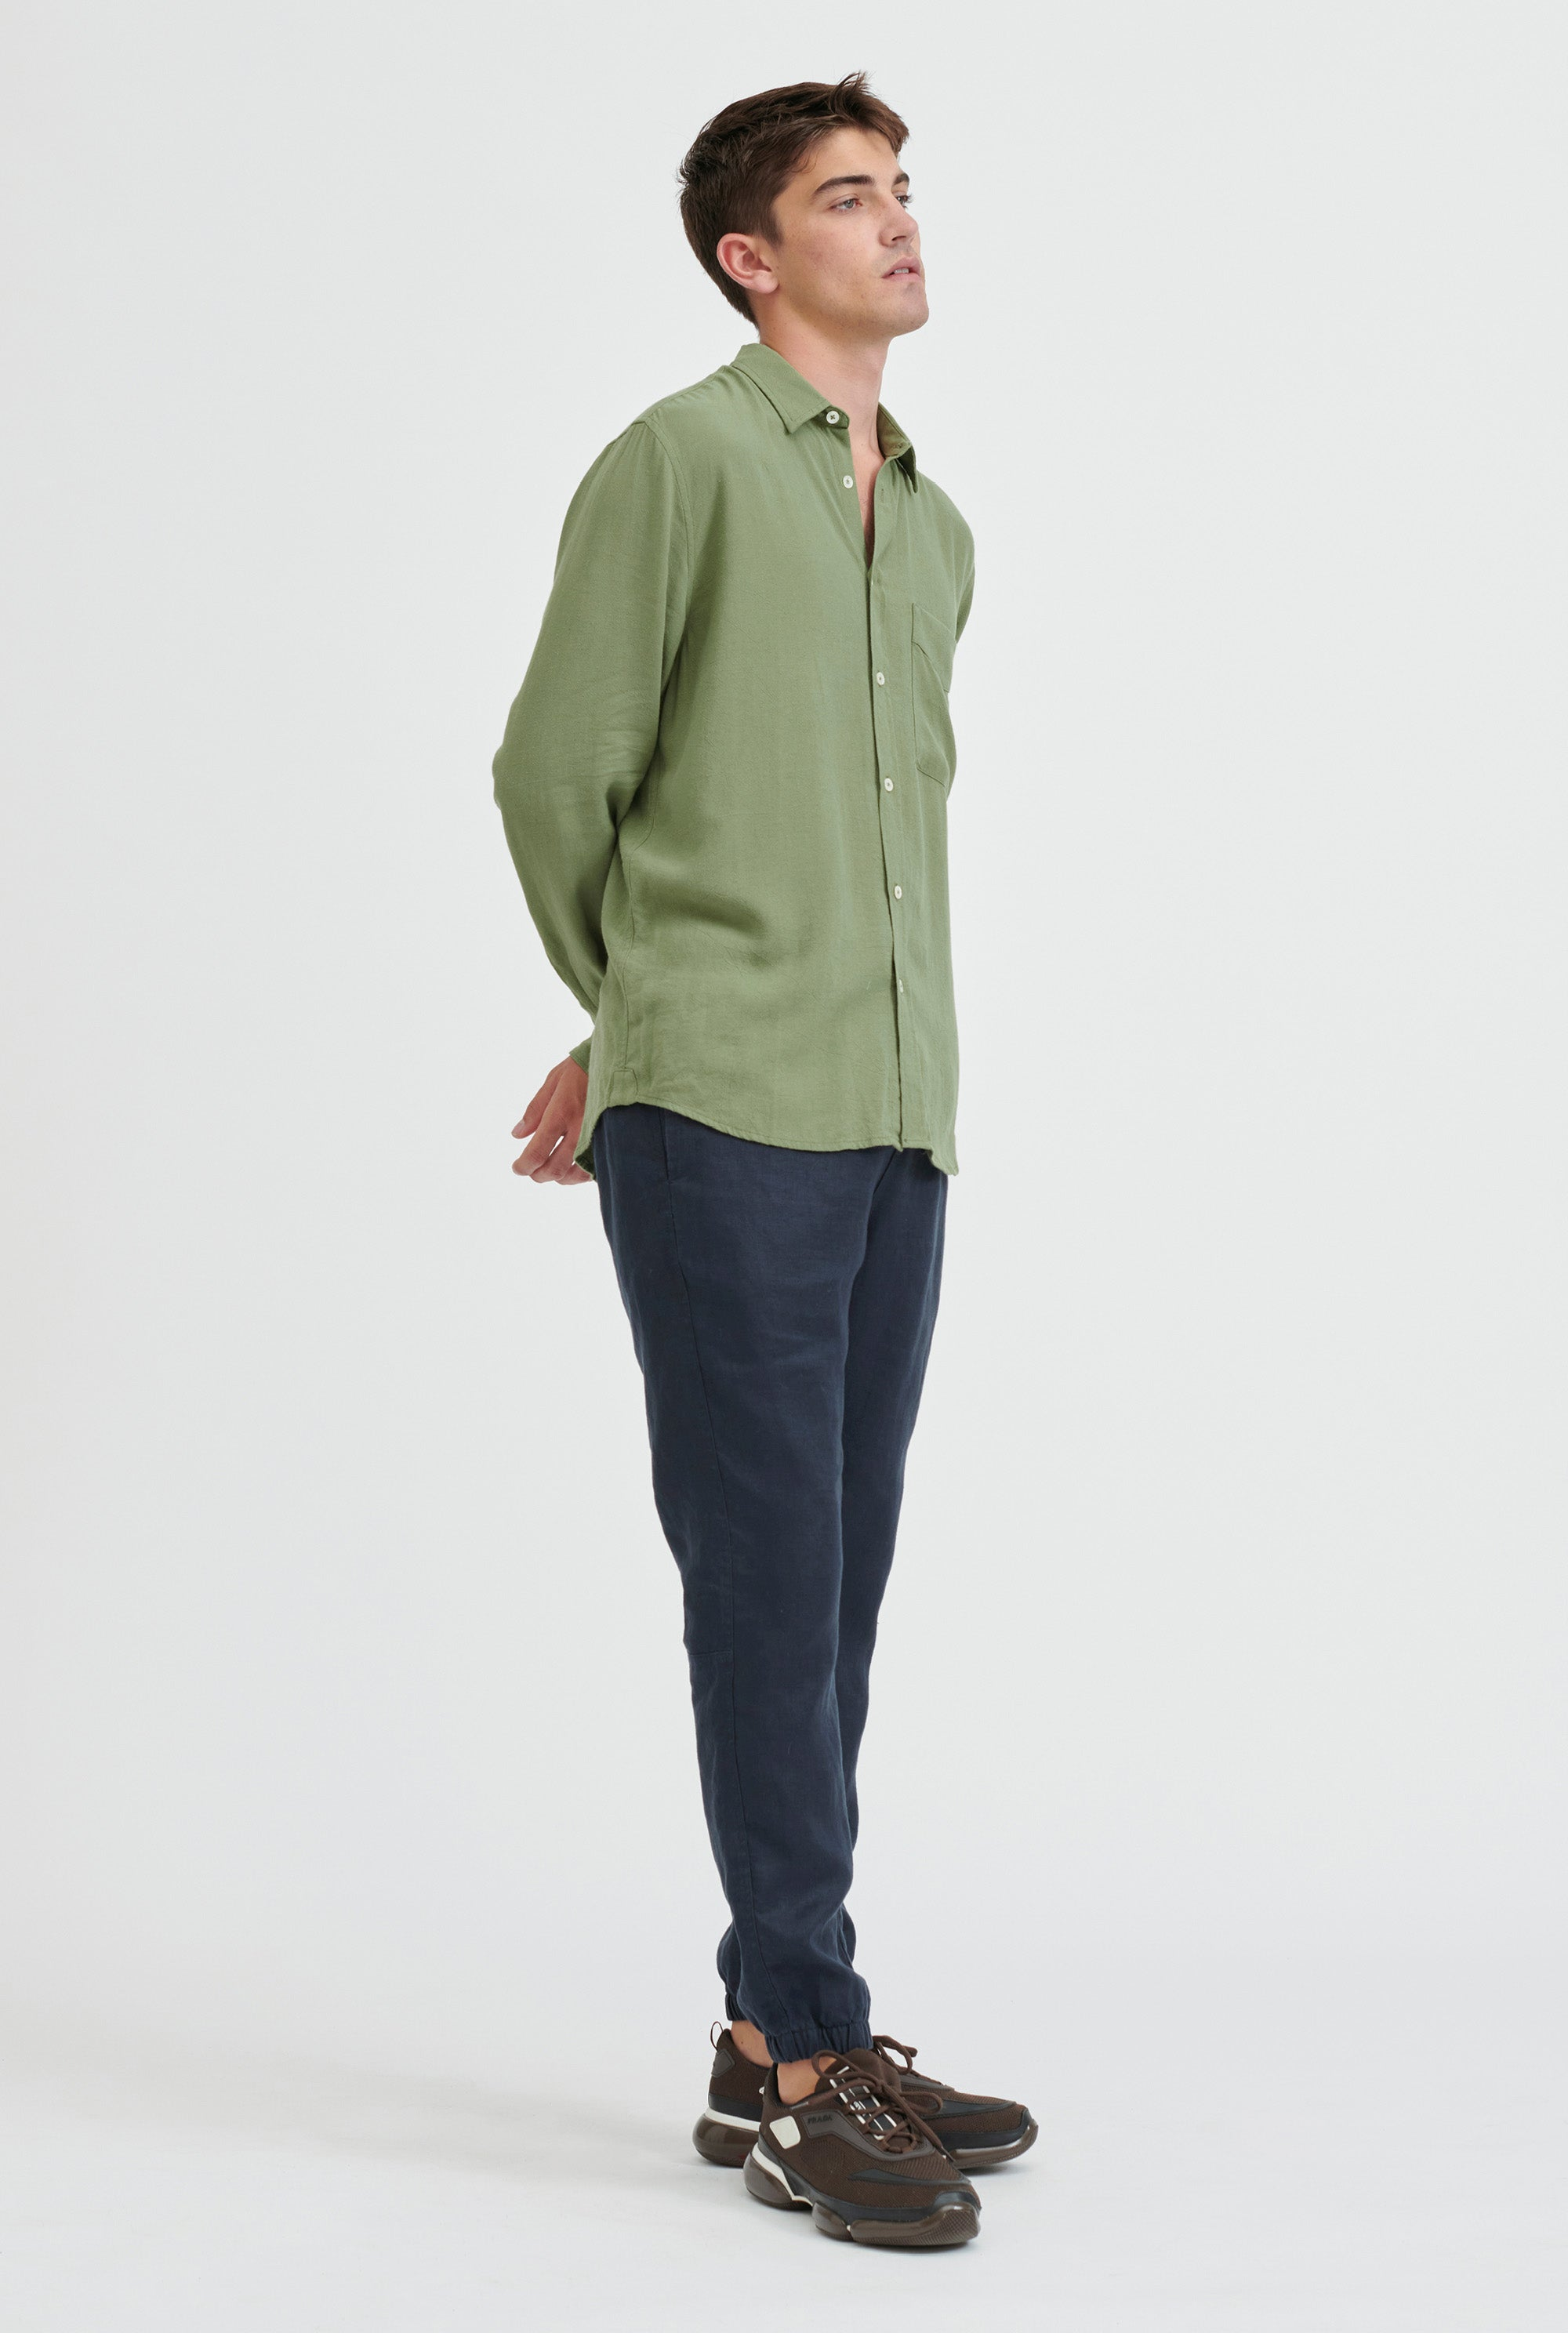 Tencel Shirt - Signature Green